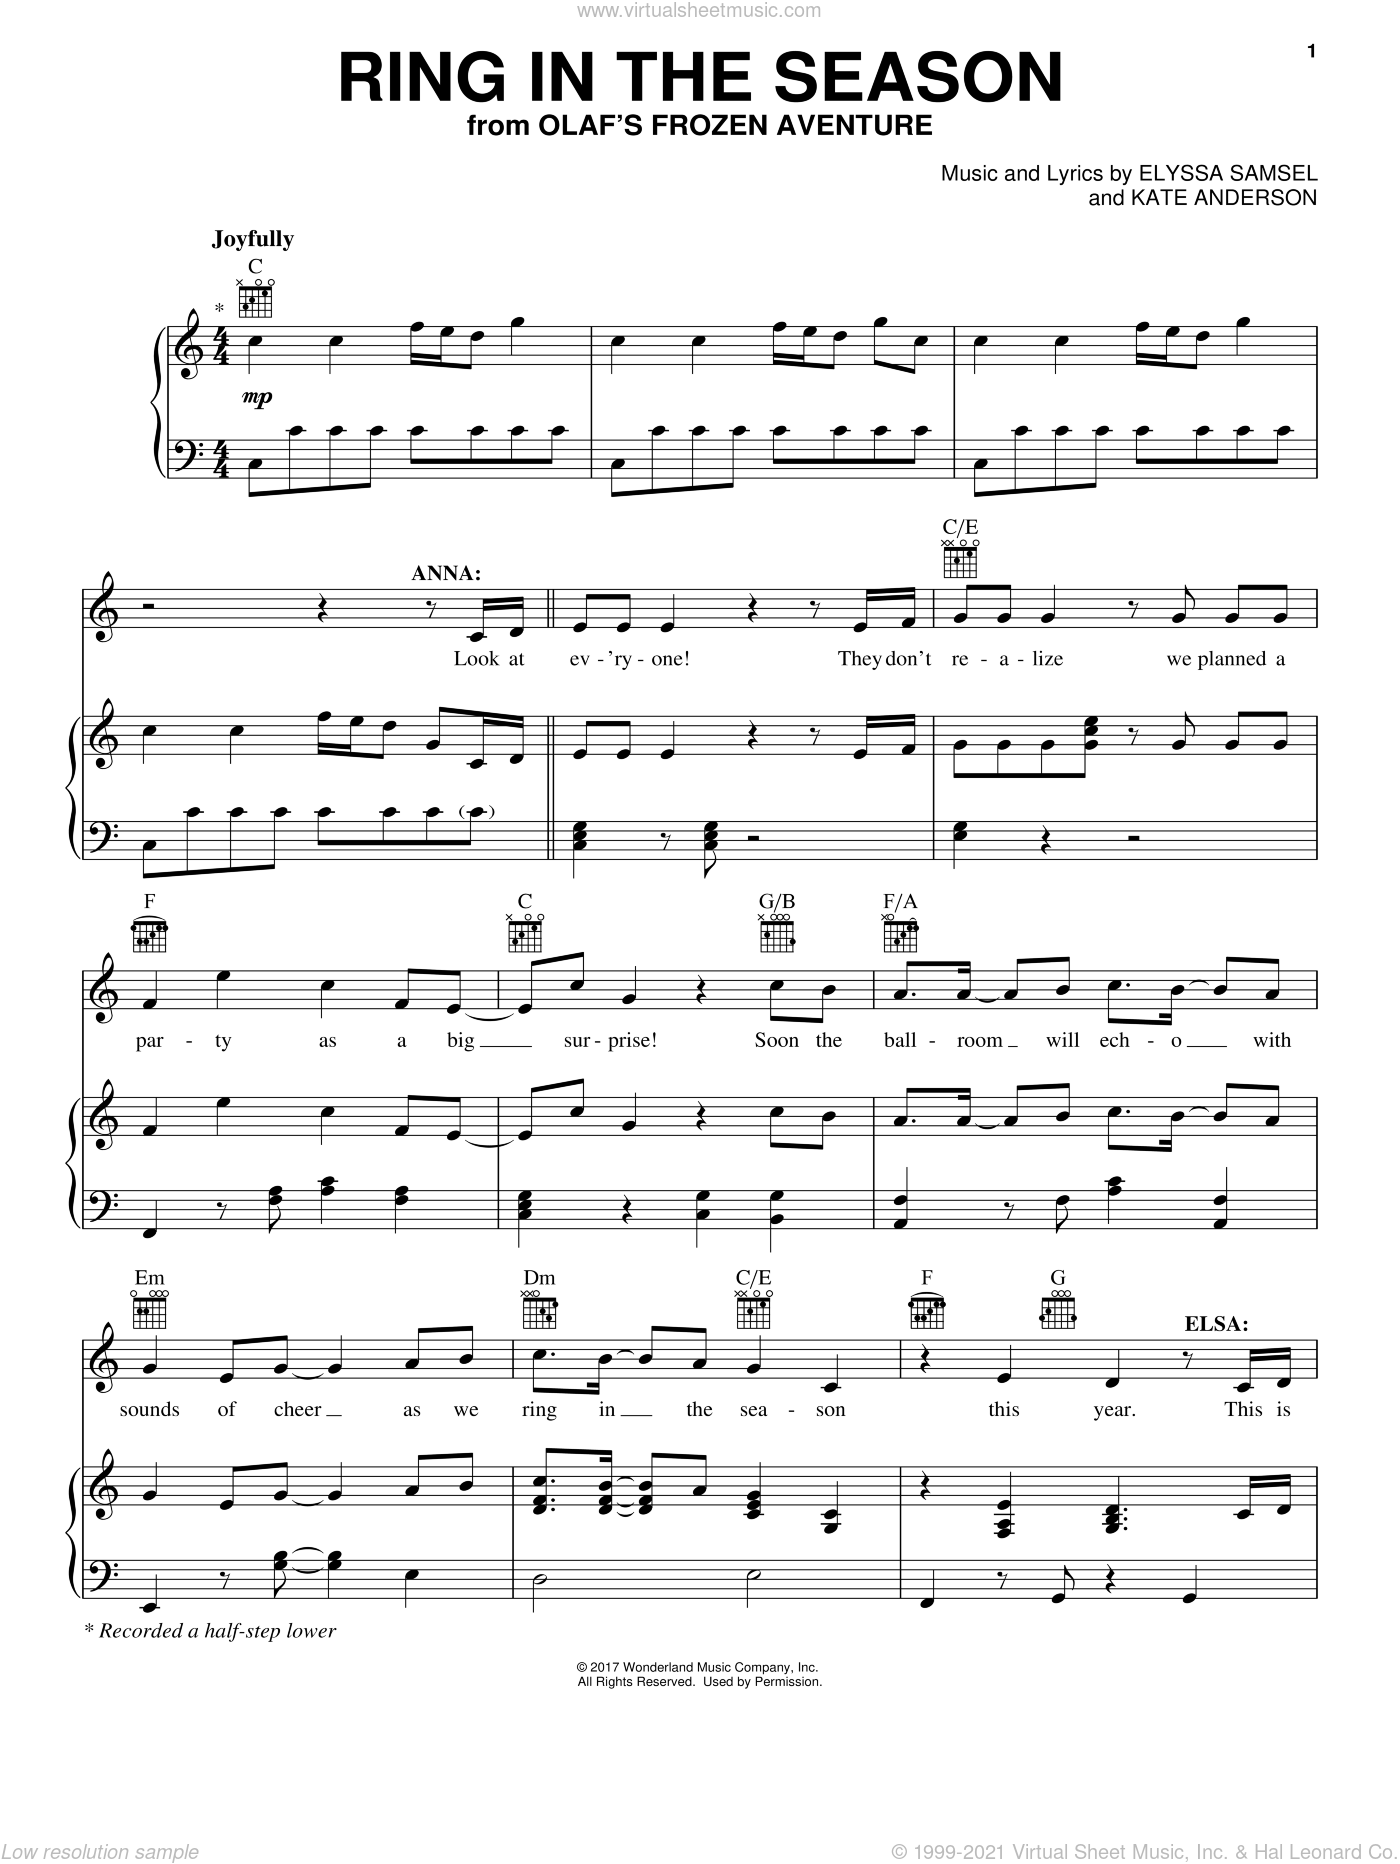 Ring In The Season sheet music for voice, piano or guitar by Elyssa Samsel and Kate Anderson, intermediate skill level